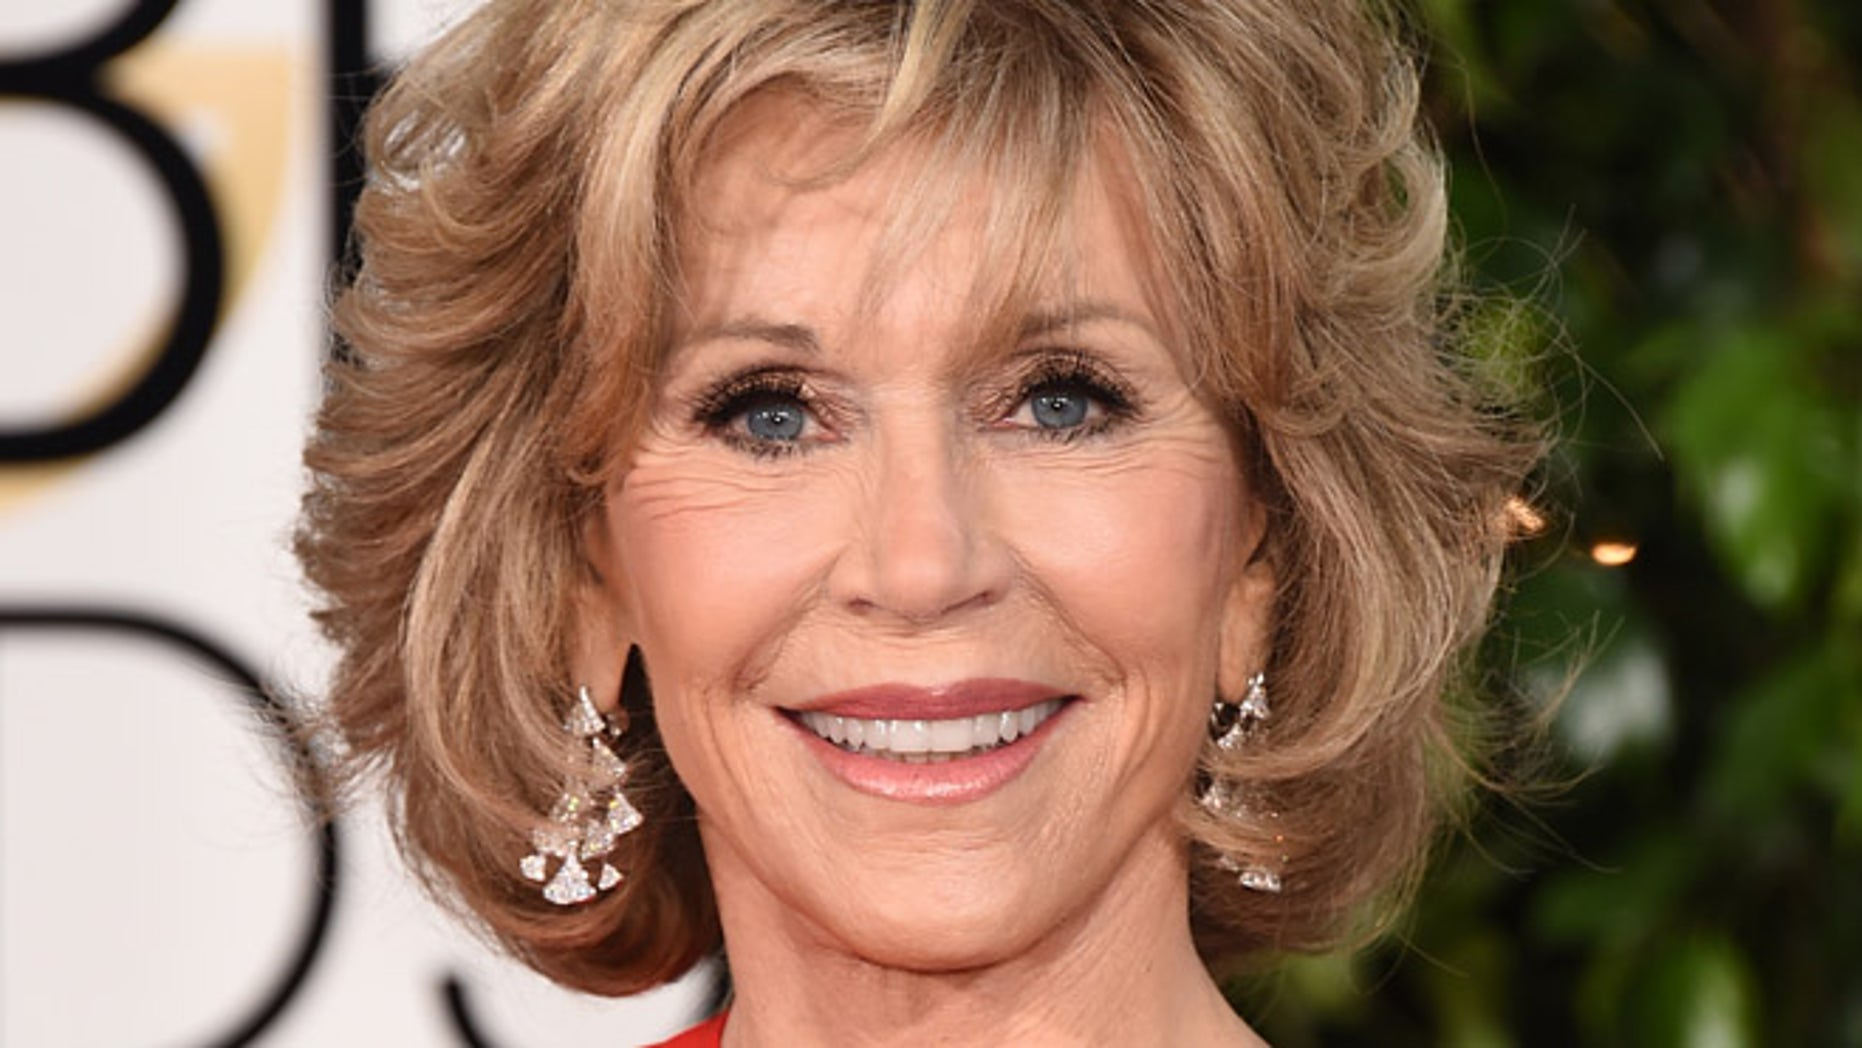 Jan. 11, 2015: Jane Fonda arrives at the 72nd annual Golden Globe Awards at the Beverly Hilton Hotel in Beverly Hills, Calif. (Jordan Strauss/Invision/AP)